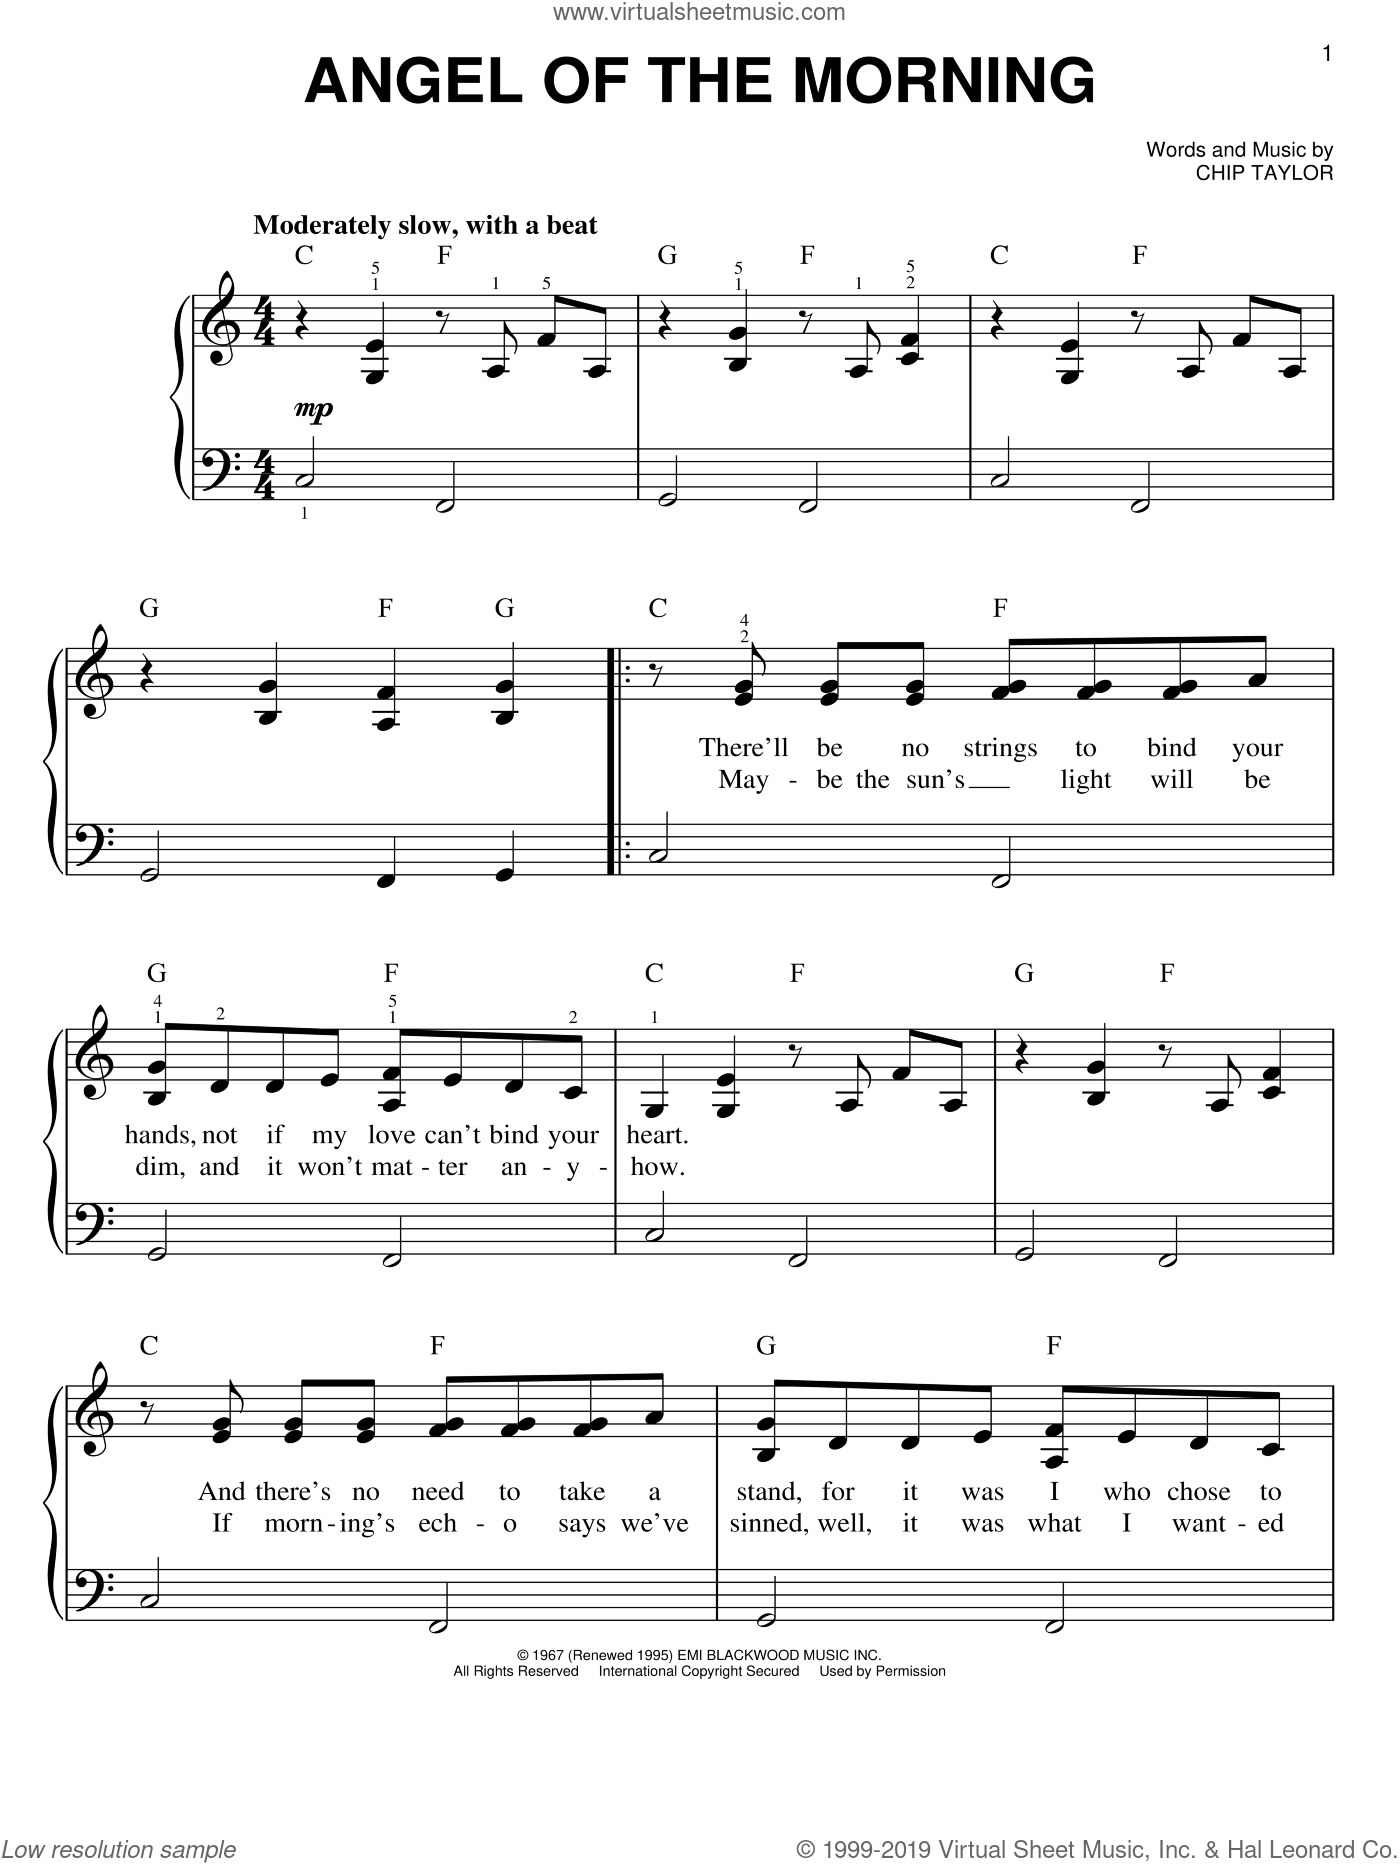 Angel Of The Morning sheet music for piano solo by Juice Newton, Merrilee Rush, Merrilee Rush & The Turnabouts and Chip Taylor, easy skill level